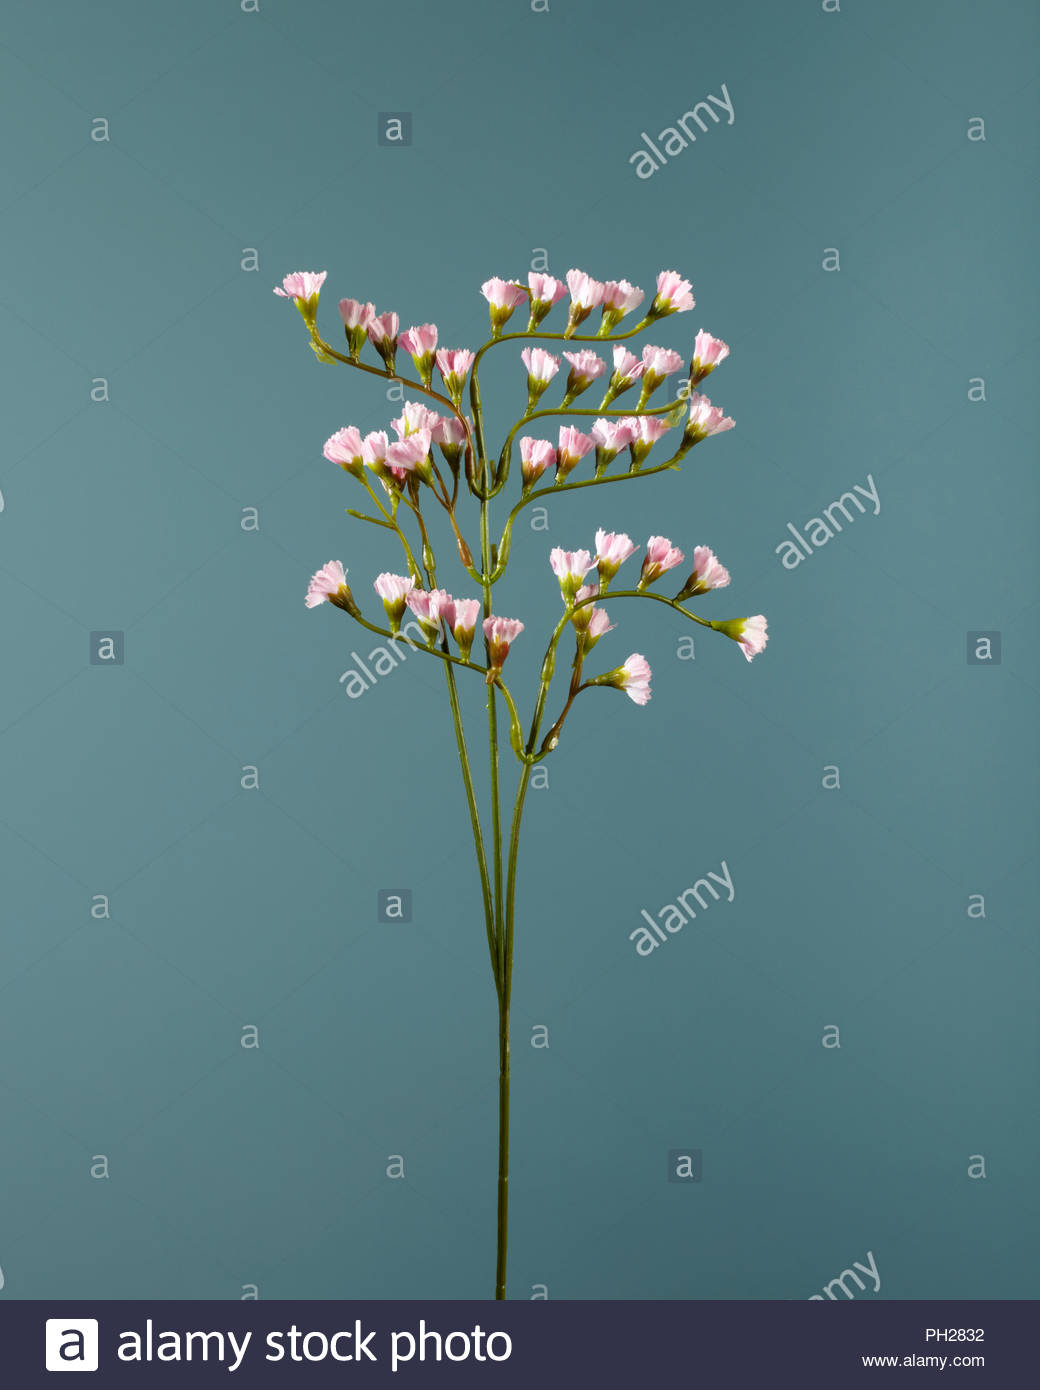 Pink flowers on twig Stock Photo